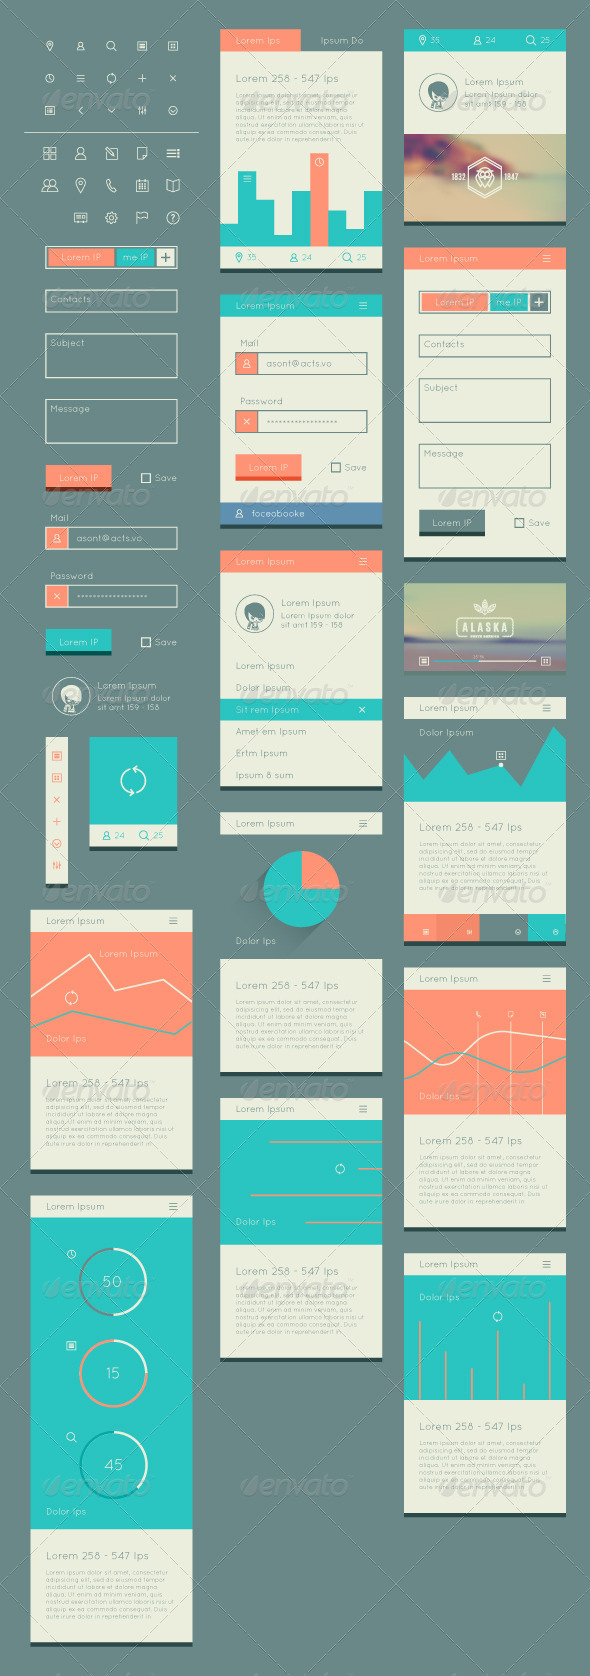 Flat UI Kit for Web and Mobile - Web Technology